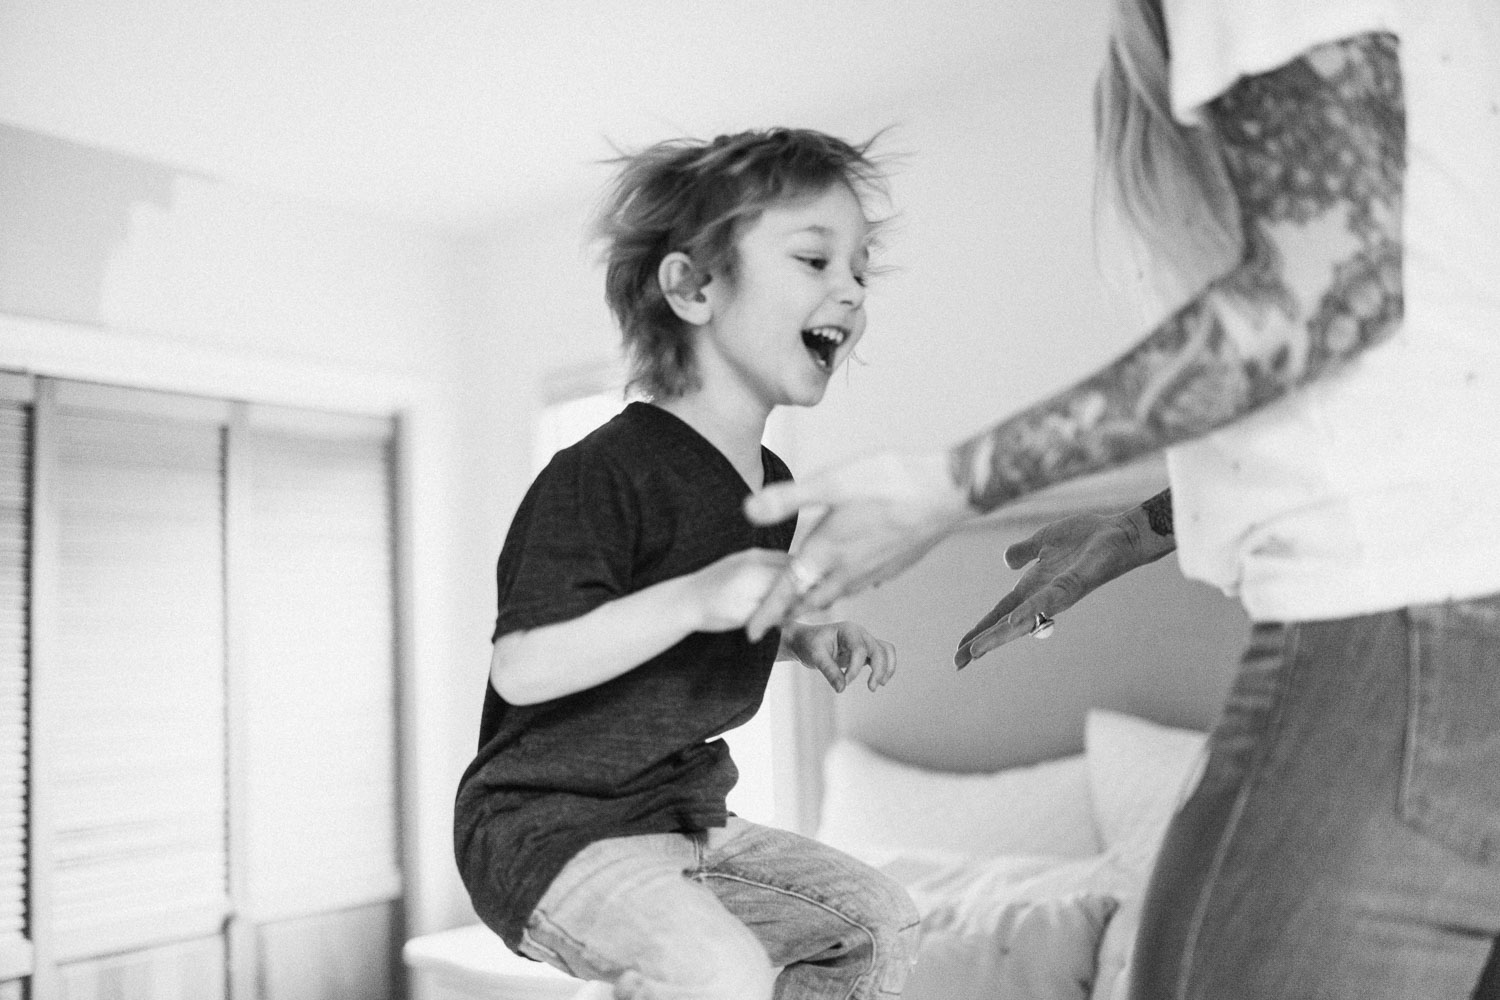 candid-photo-of-family-at-home-jumping-on-bed-draper-utah